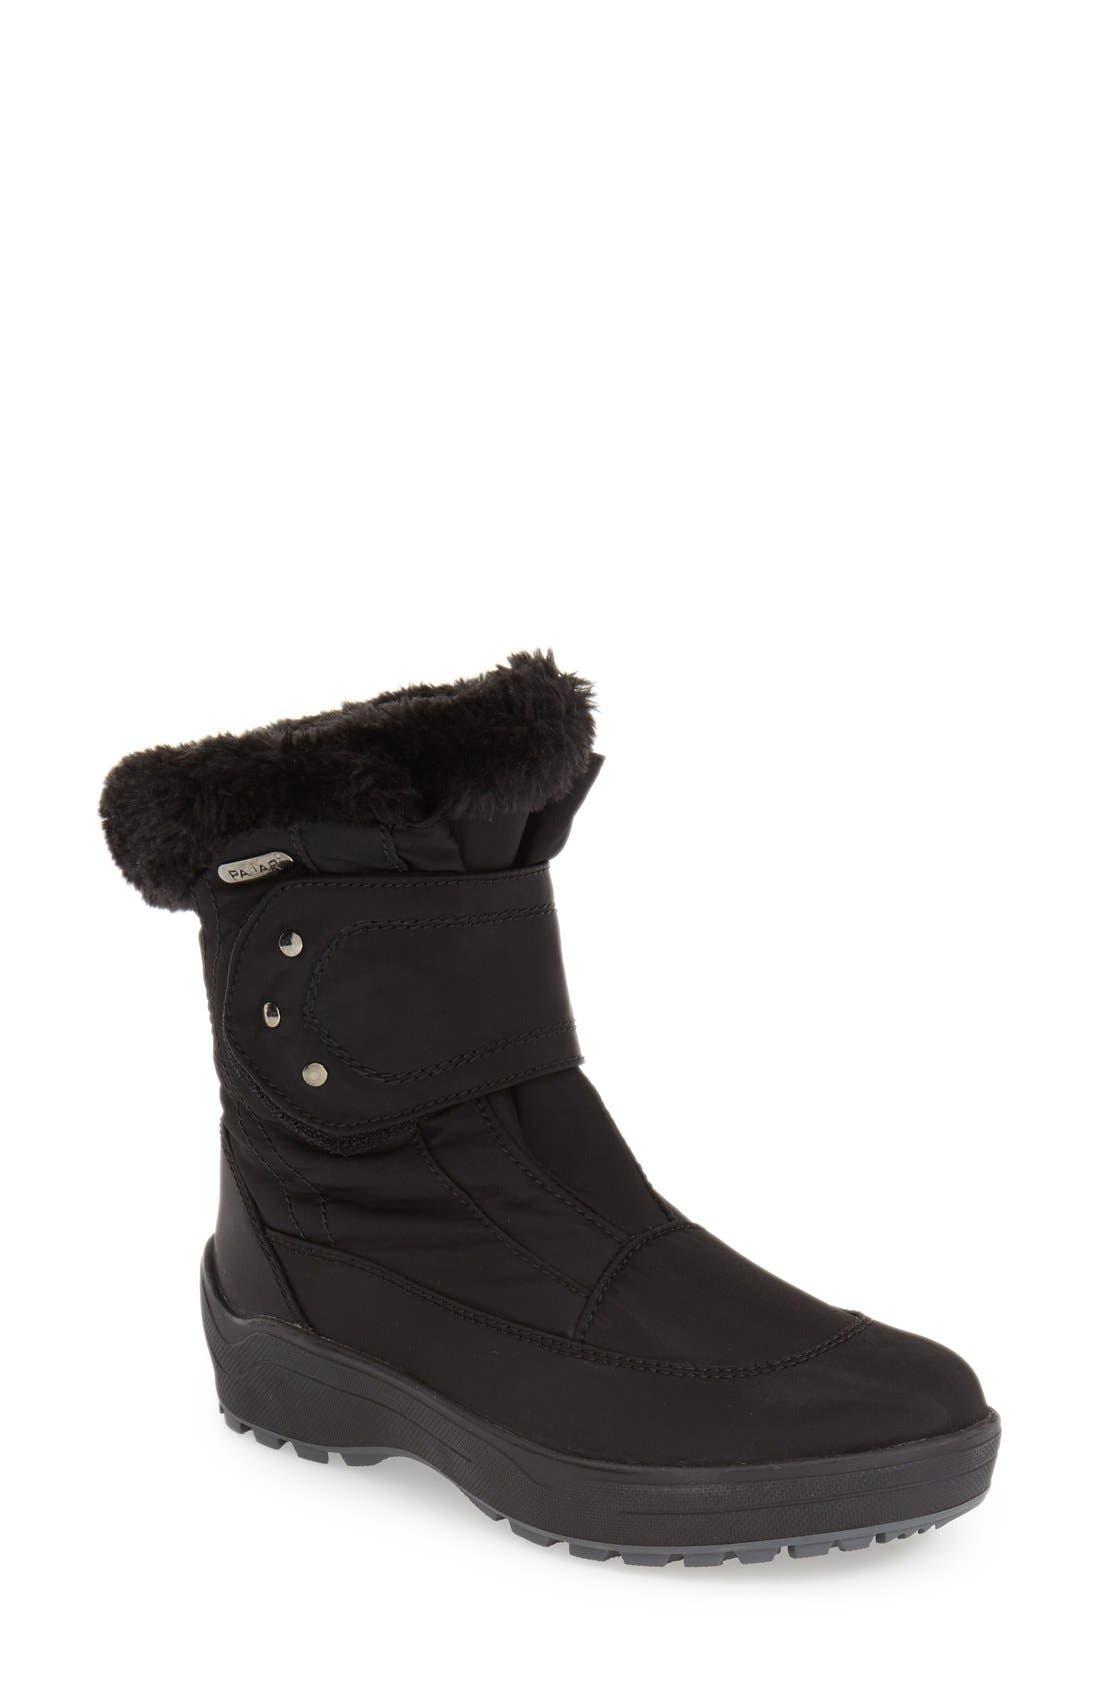 Shoes 'Moscou' Snow Boot,                             Main thumbnail 5, color,